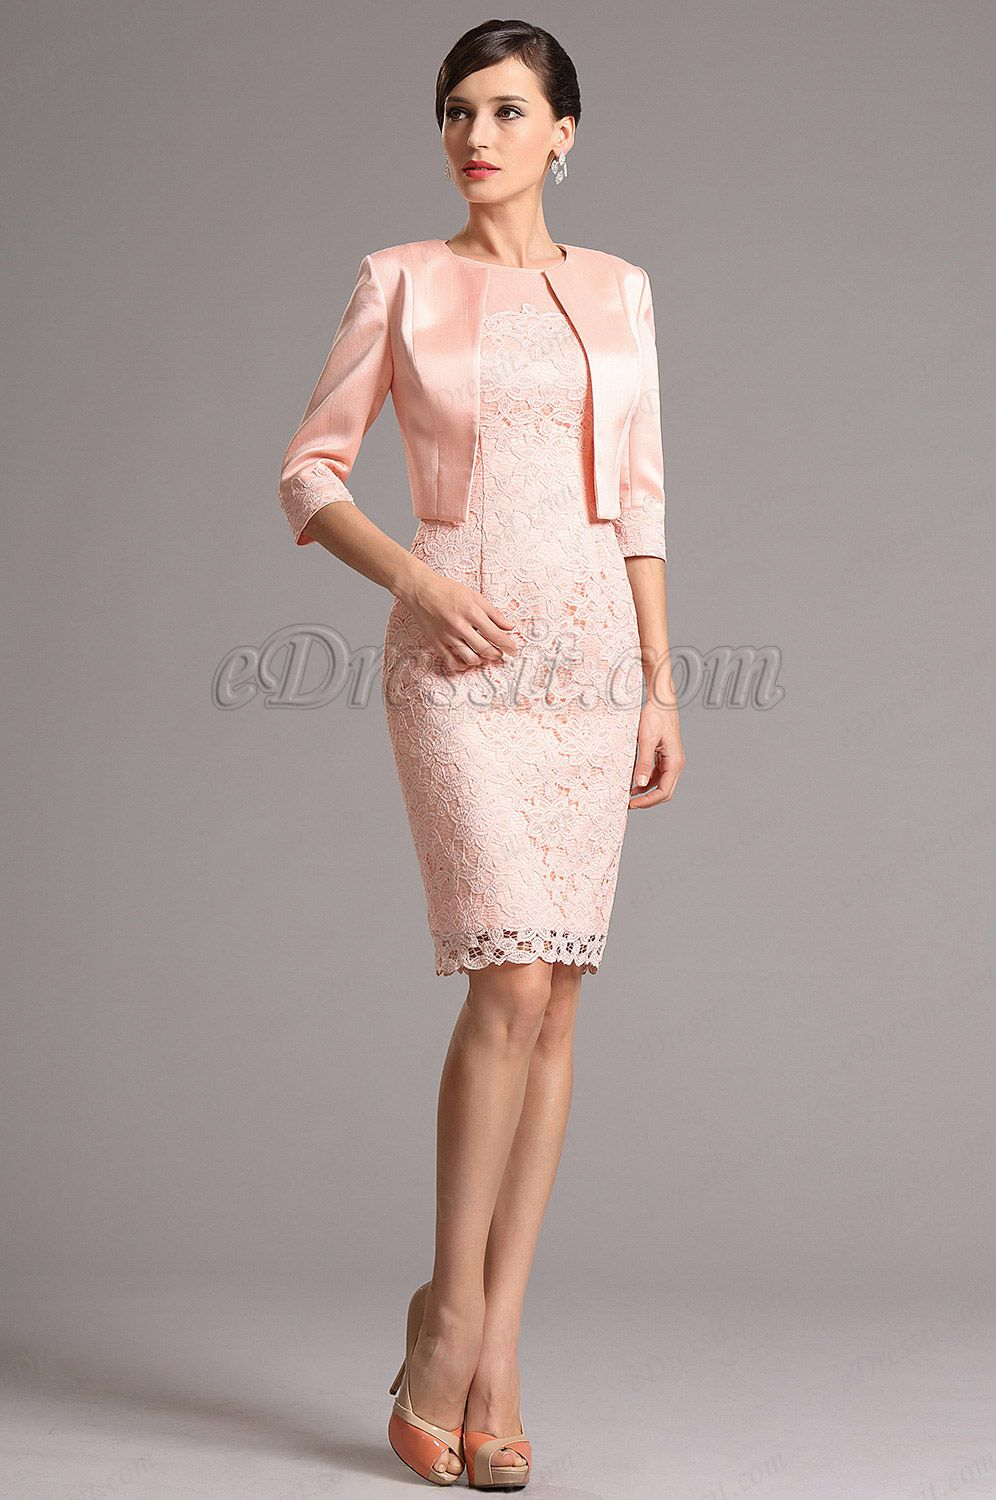 Pink dress and jacket for wedding  Pink Mid Sleeves Knee Length Two Pieces Cocktail Dress